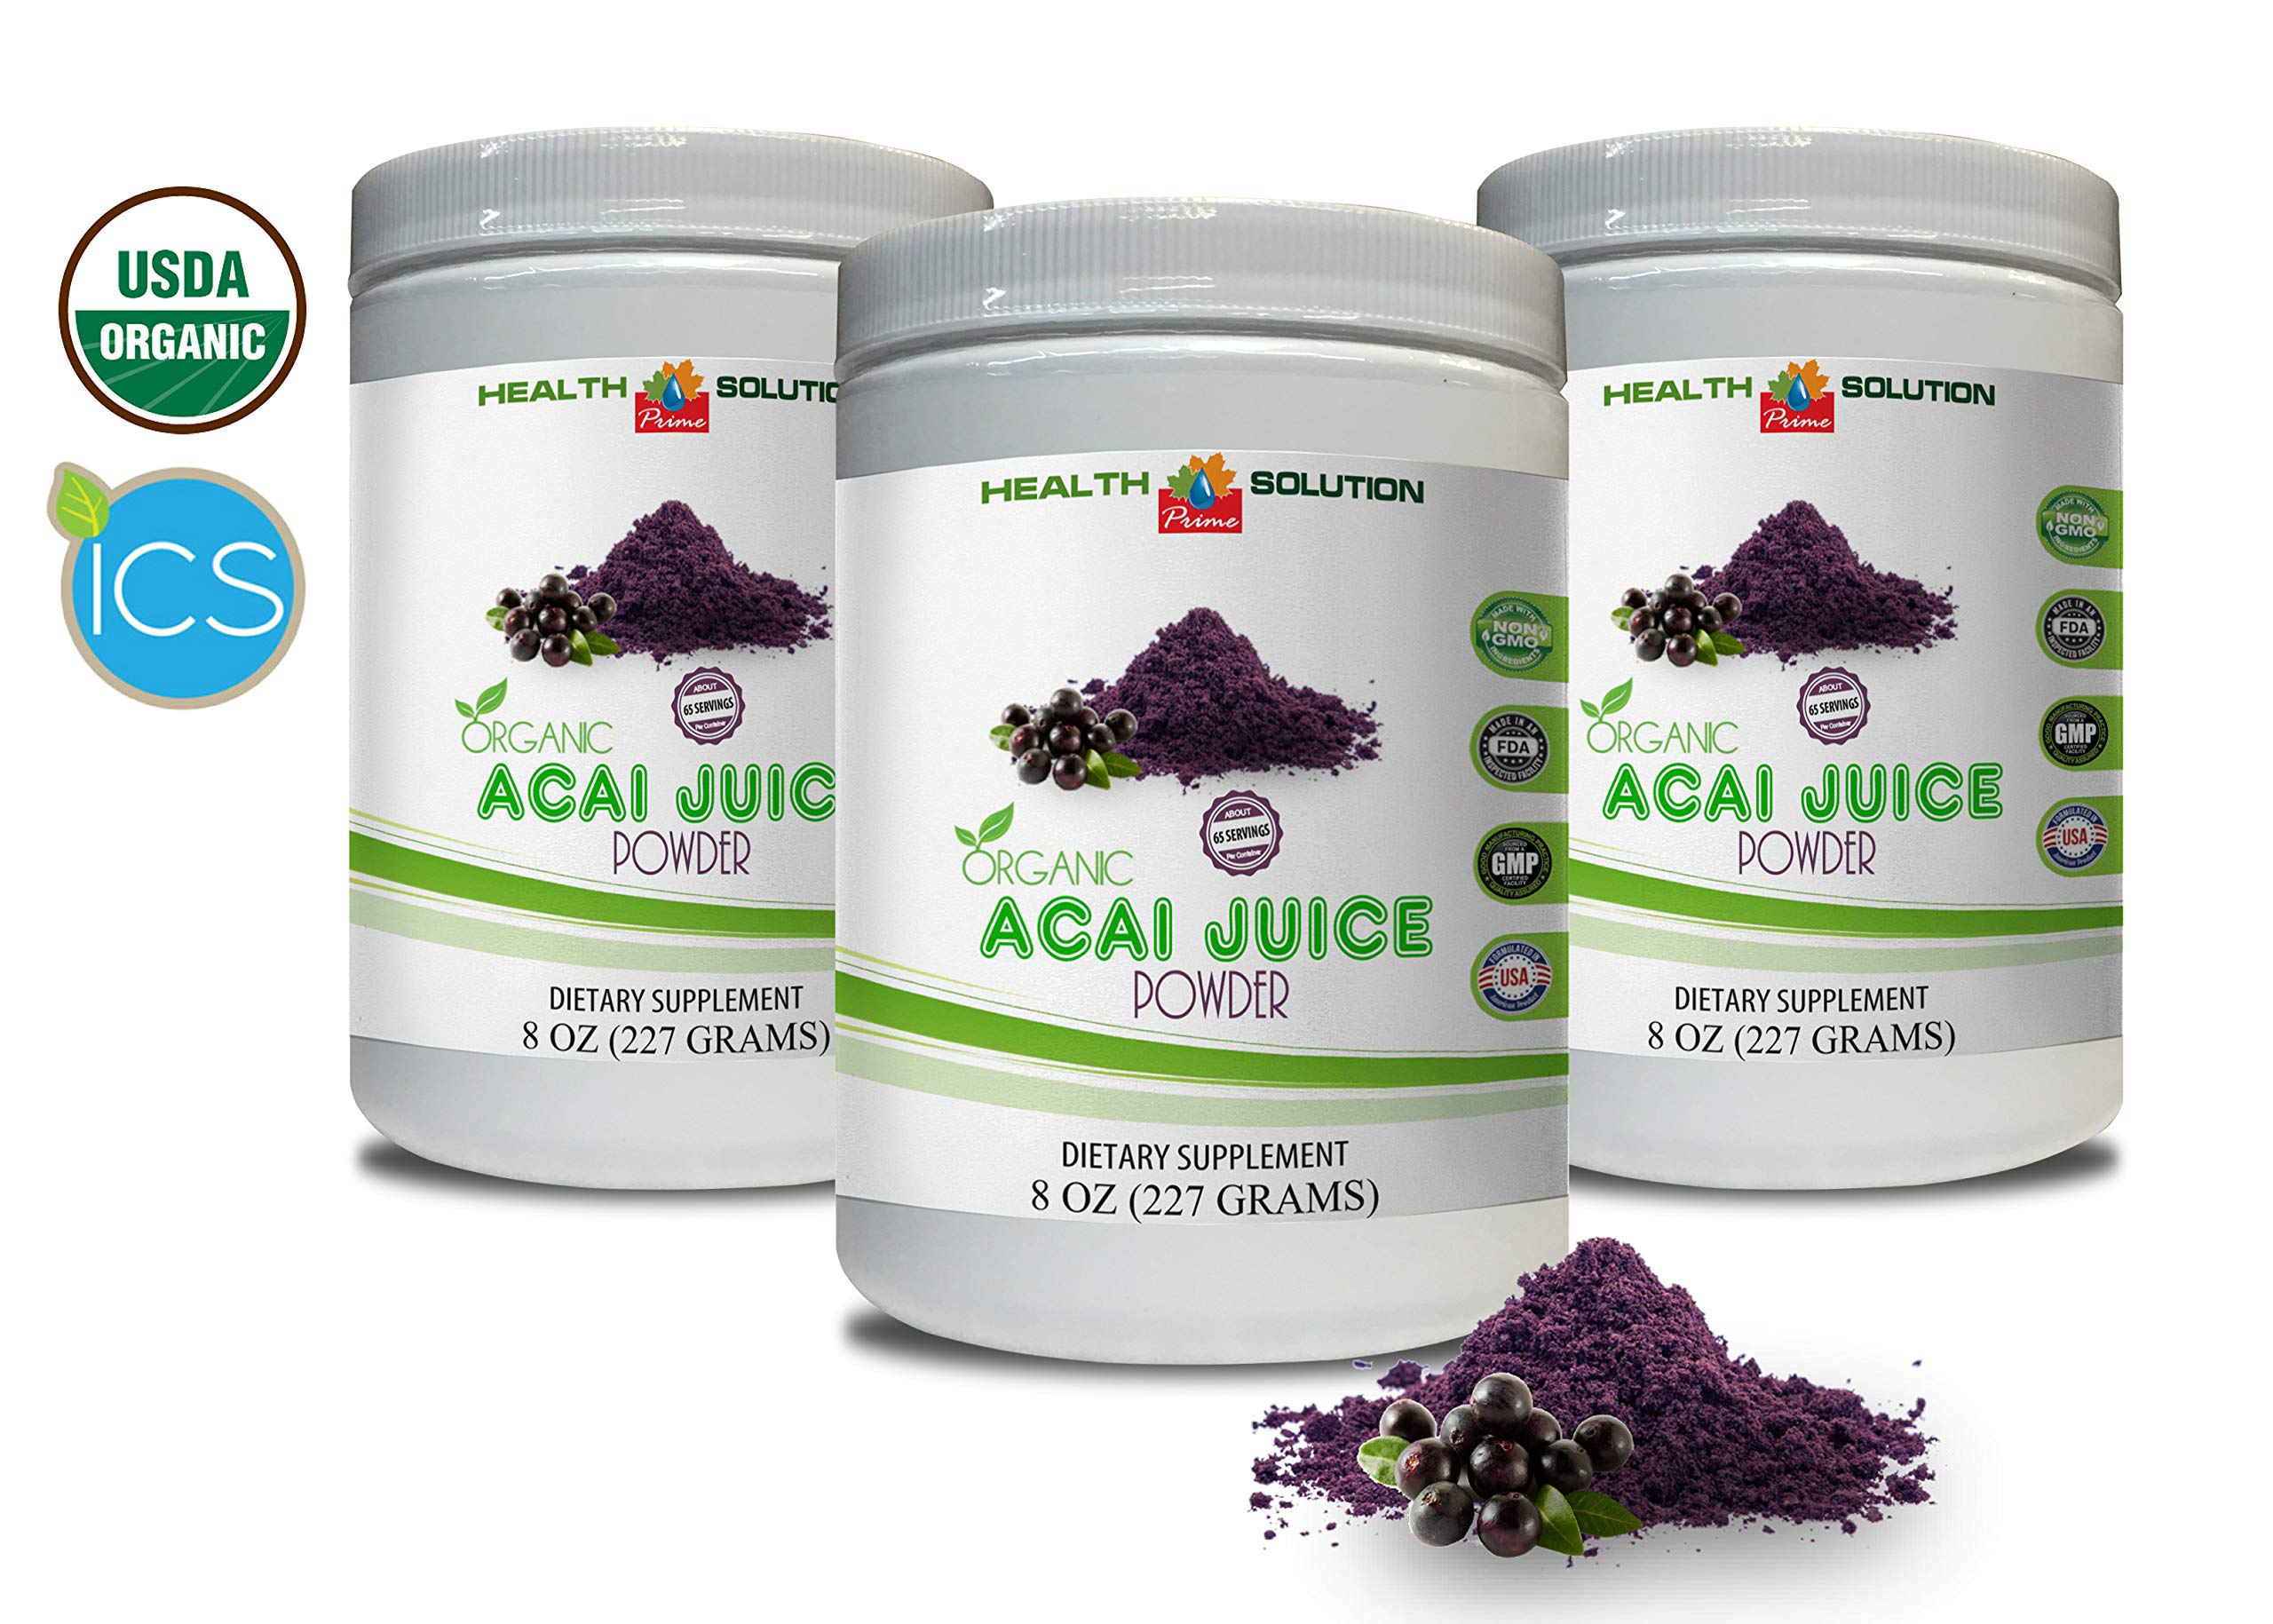 Digestion Supplement Powder - Organic ACAI Juice Powder - Pure acai Powder - 3 Cans 24 OZ (195 Servings) by Health Solution Prime (Image #1)